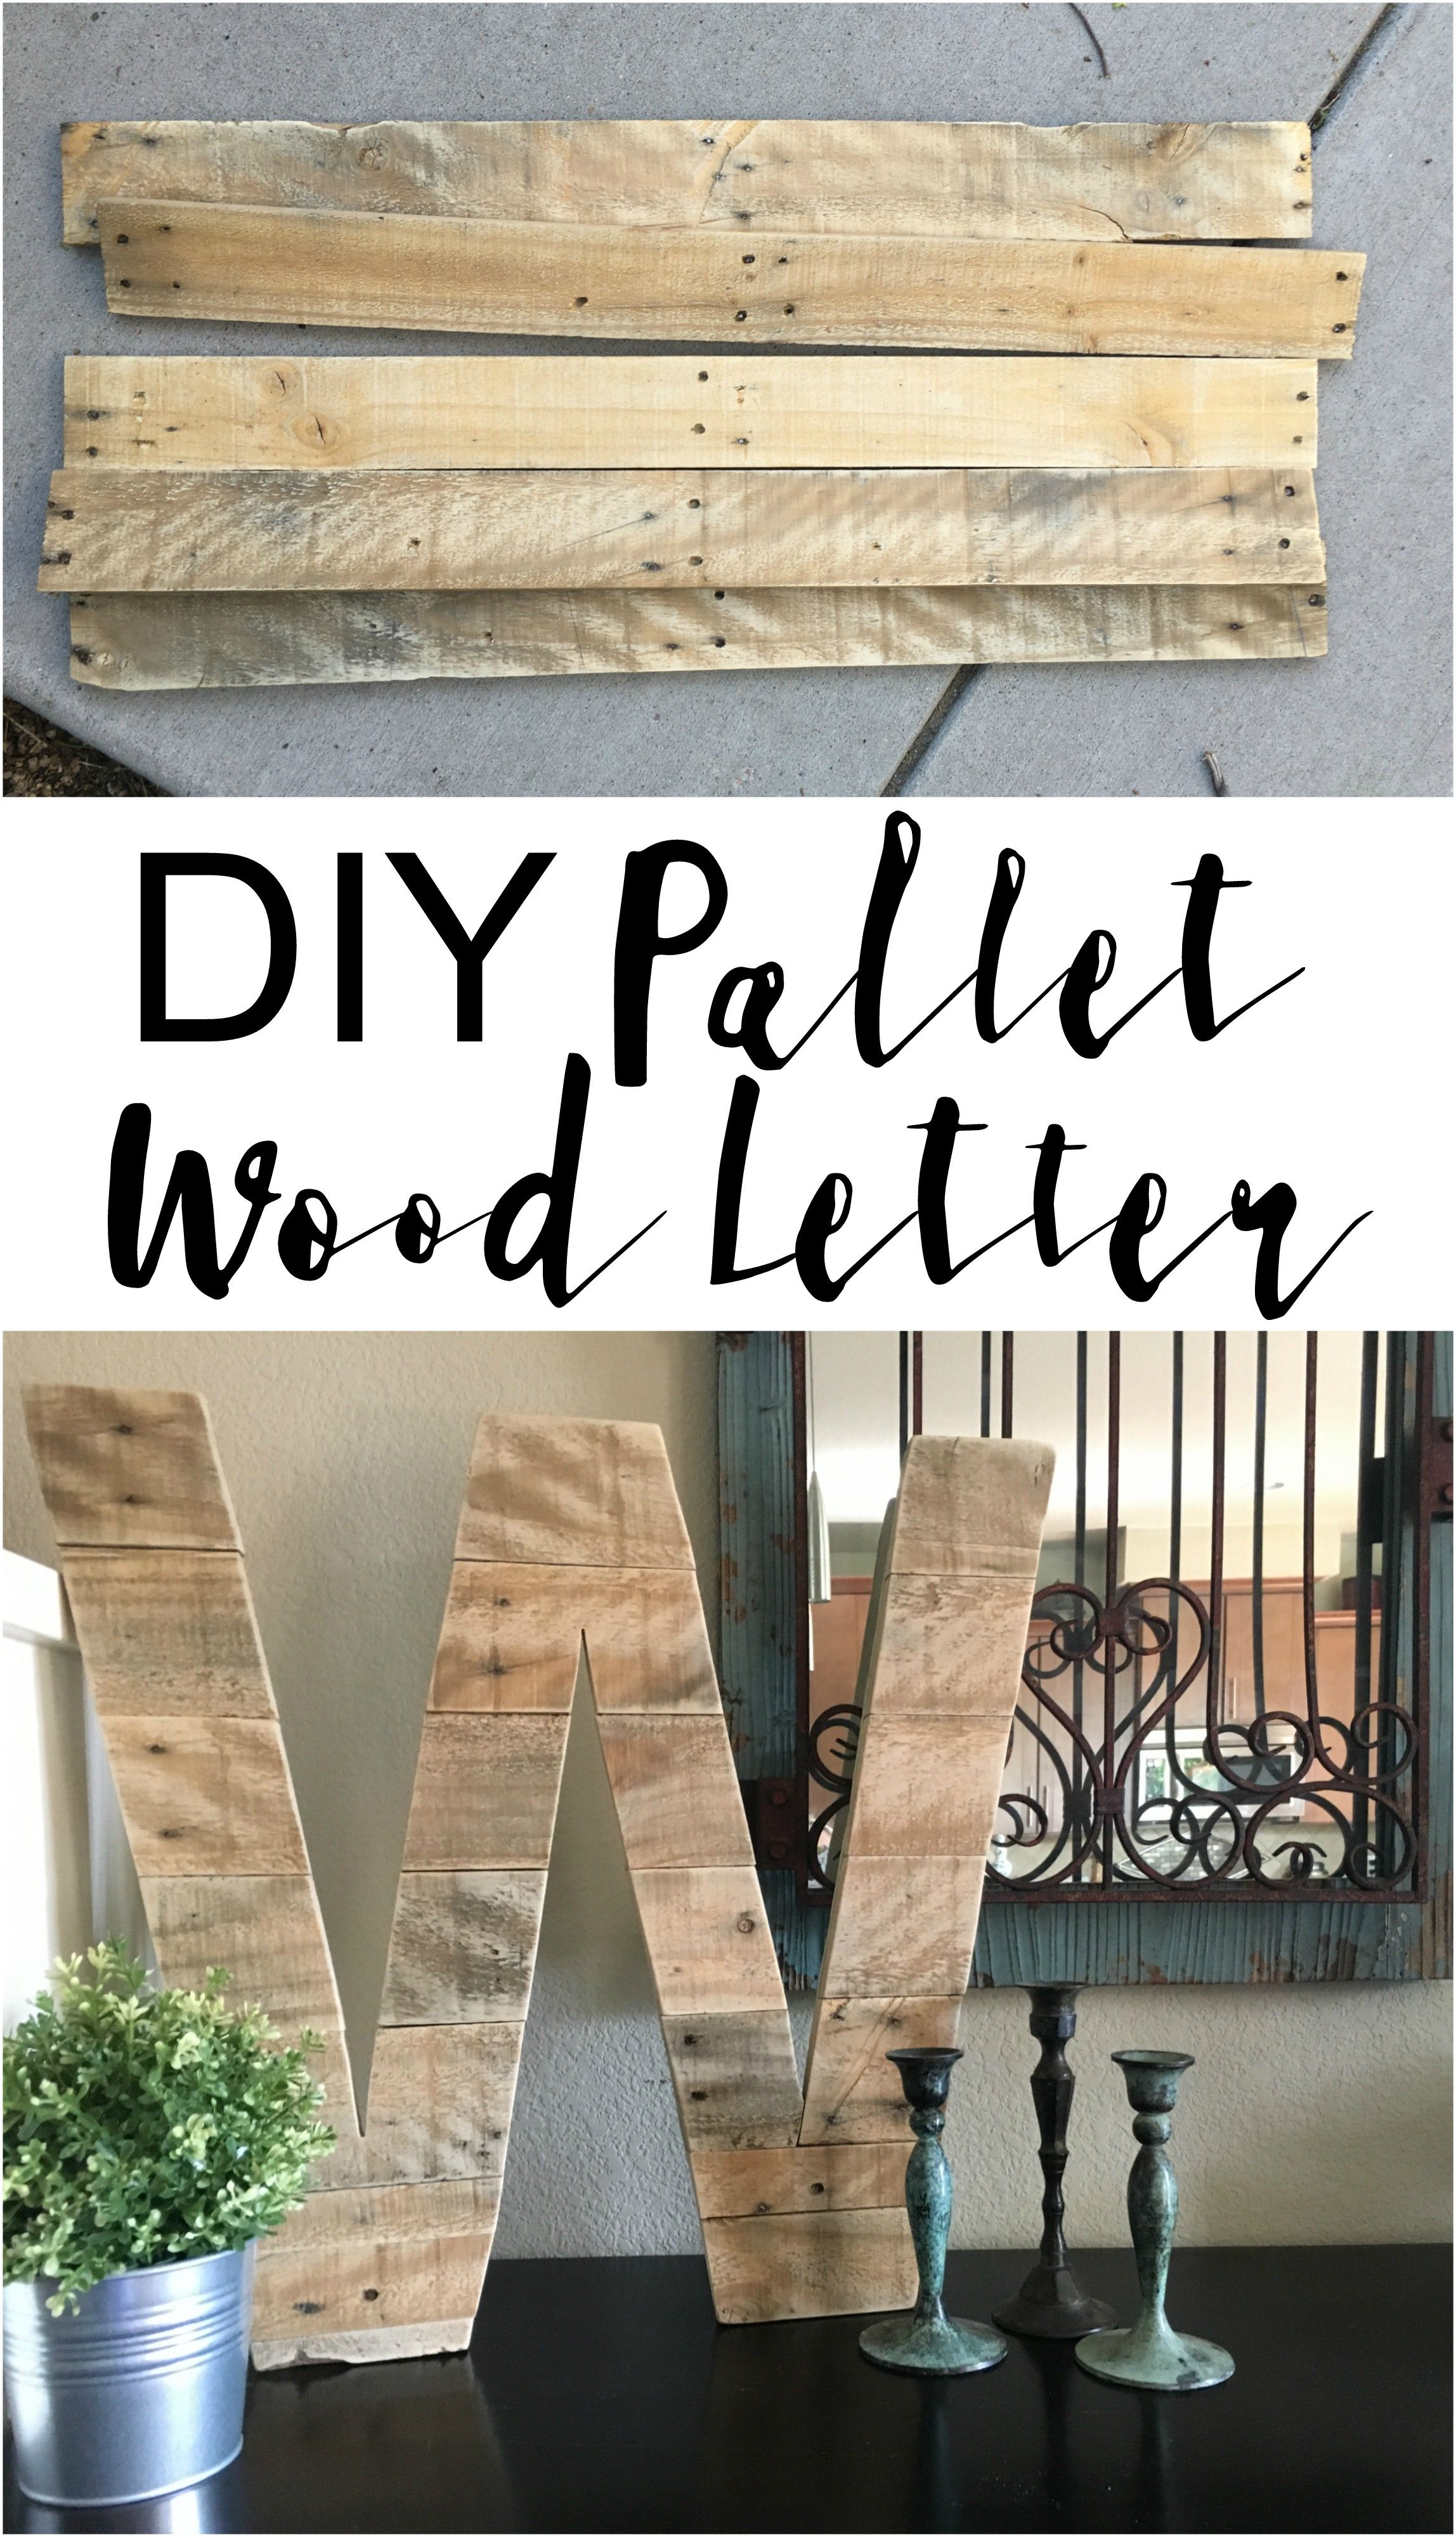 Here Is Your Next Pallet Project Create A Large Letter Out Of Wood I Love The Rustic Look Pallets And Amazing Price Free